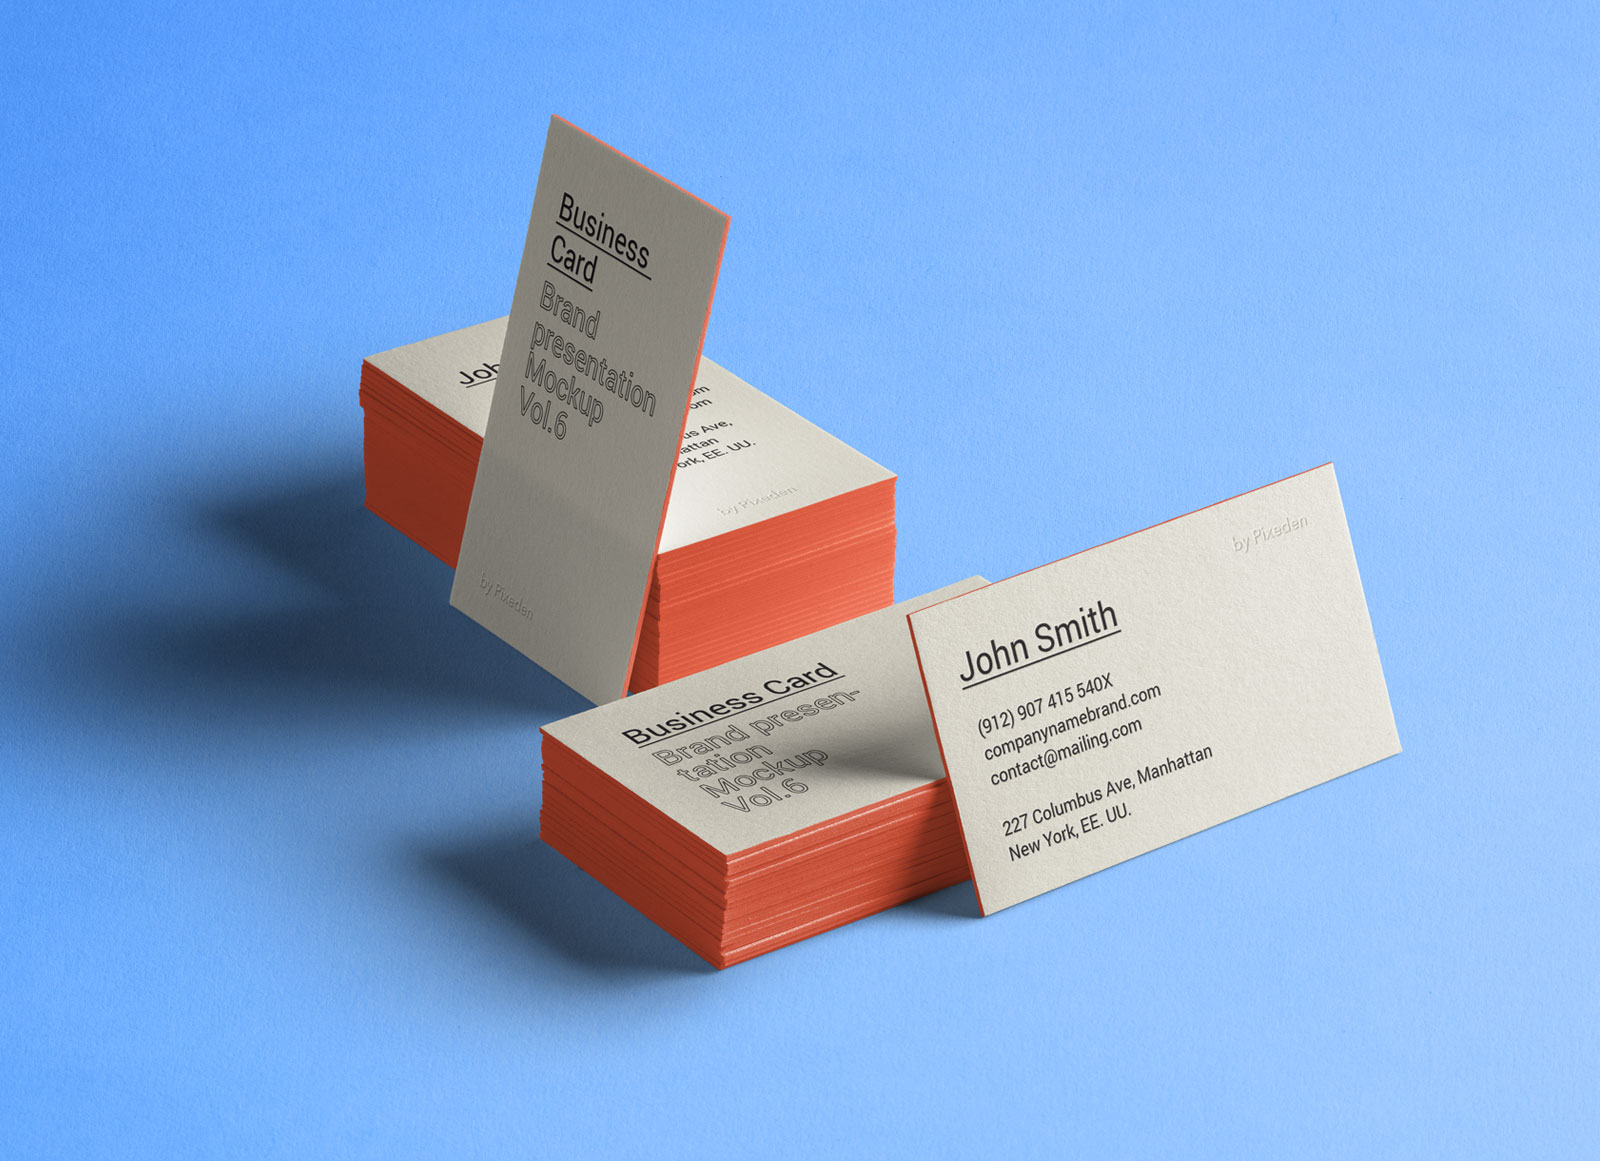 business card presentation template psd - free thick business card mockup psd good mockups